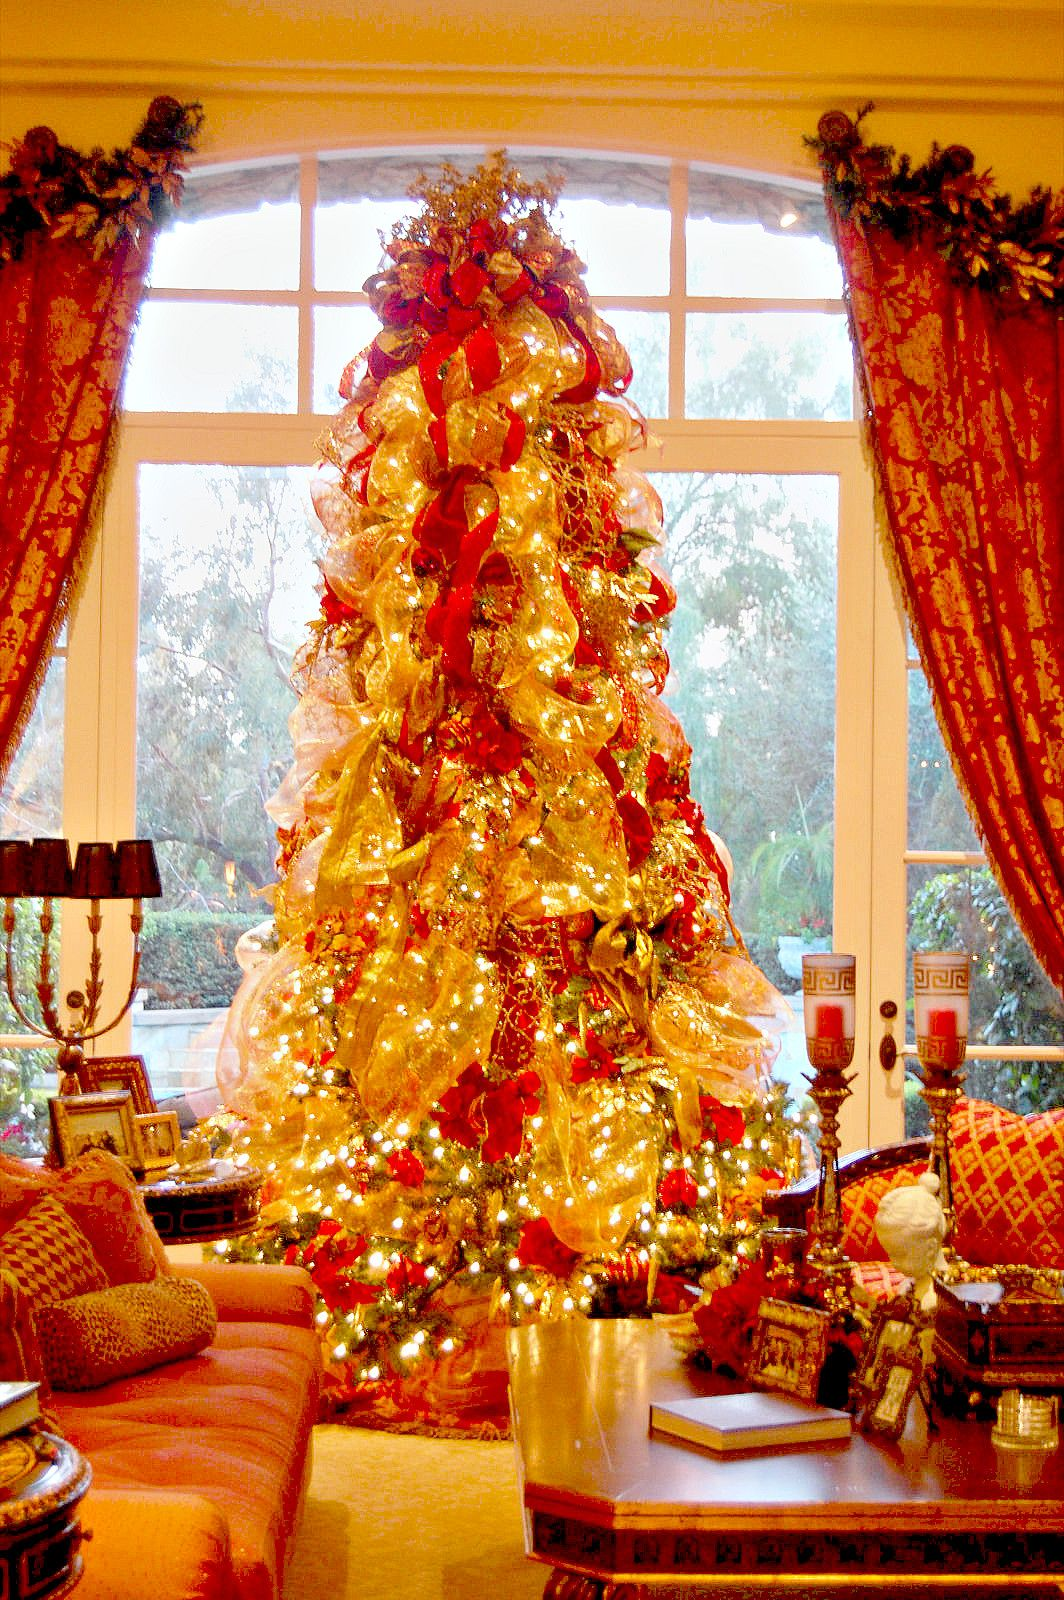 14 Ft Christmas Tree Part - 33: Www.leannemichael.com Red U0026 Gold Italian Oplulance: 14ft Christmas Tree  Dressed With